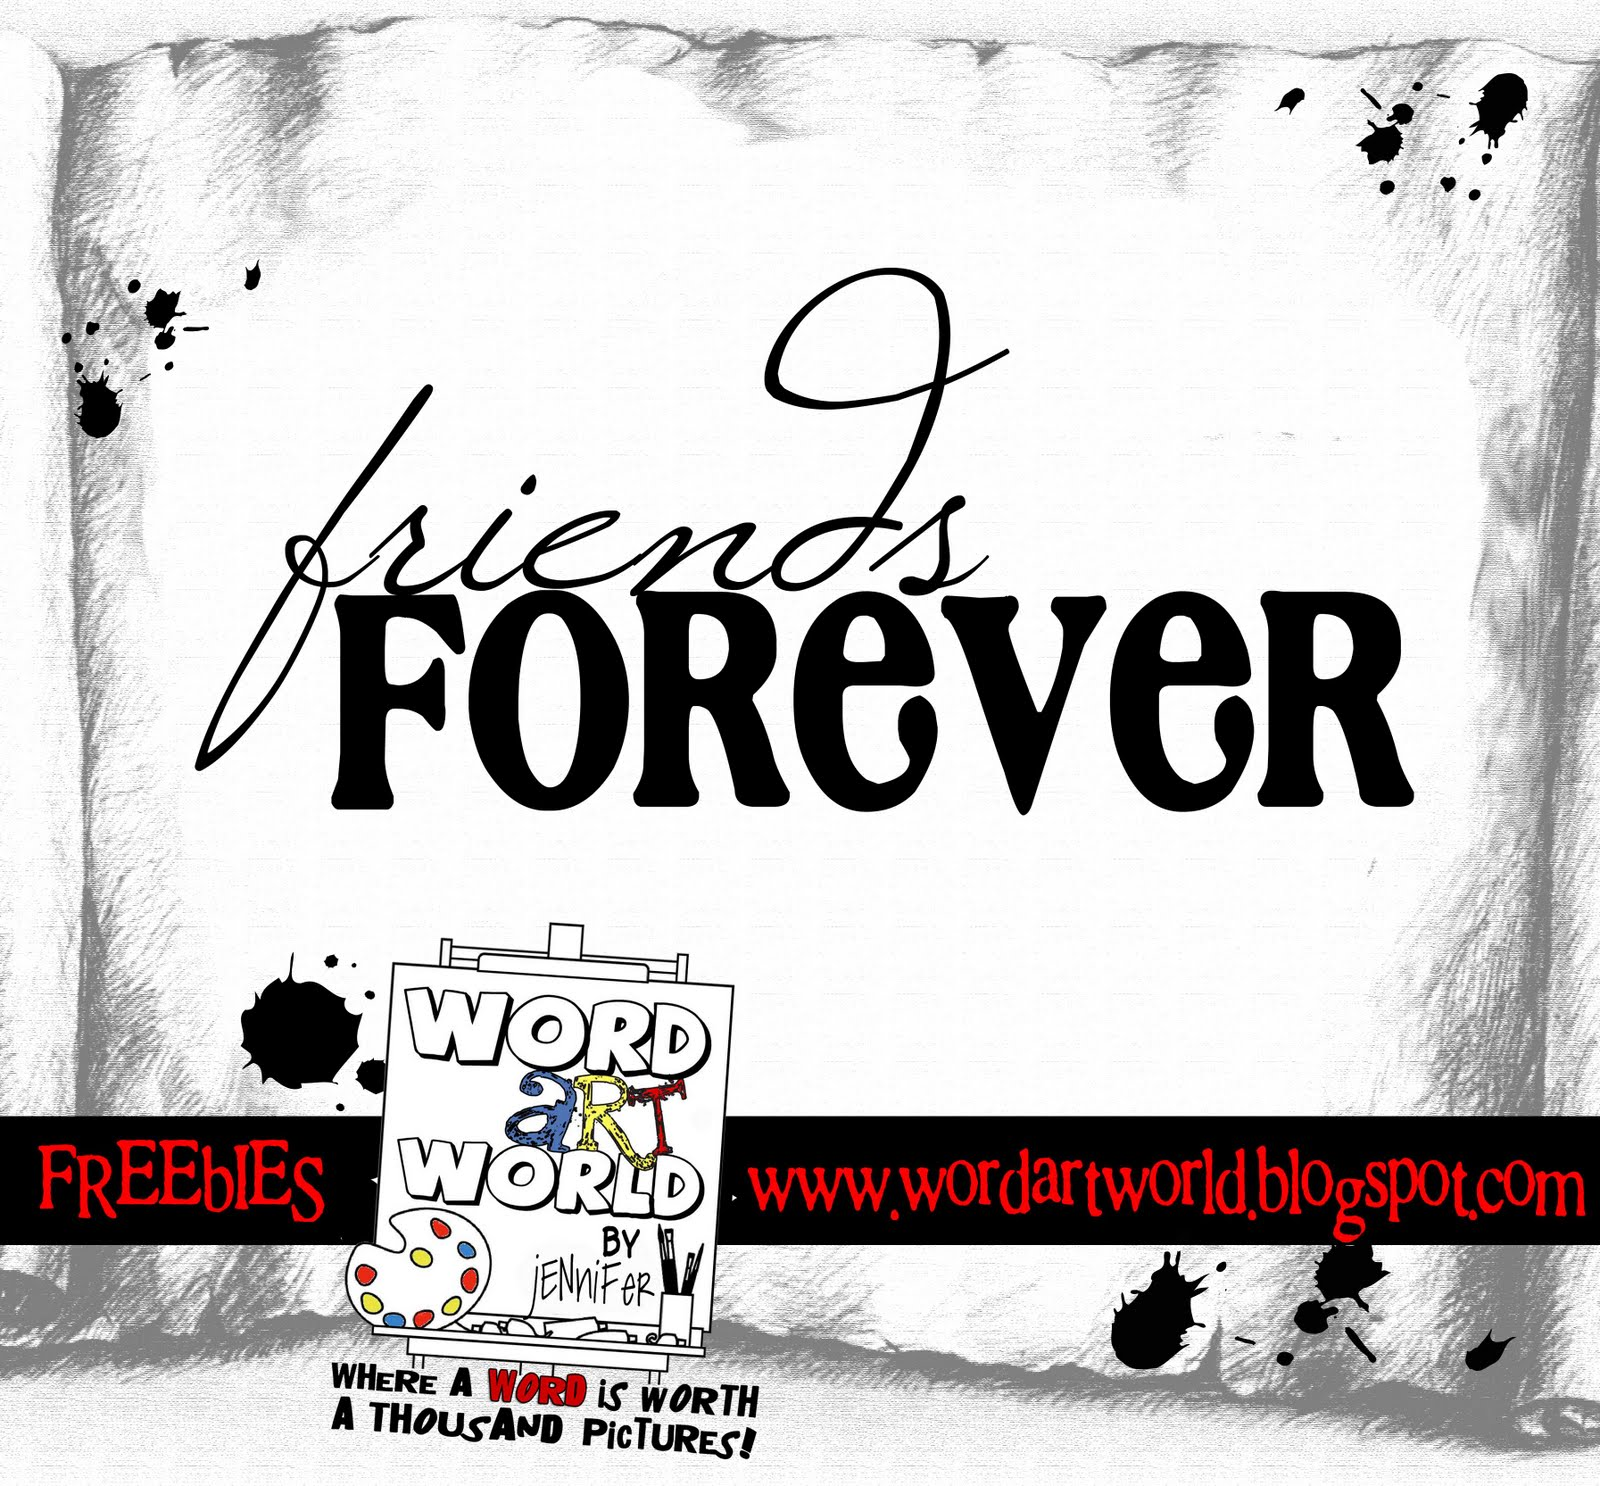 Sturdy Friends Forever Graphic Sayings Friends Forever Quotes Friends Forever Graphic Kannada Friends Forever Friends Forever Quotes inspiration Friends Forever Quotes